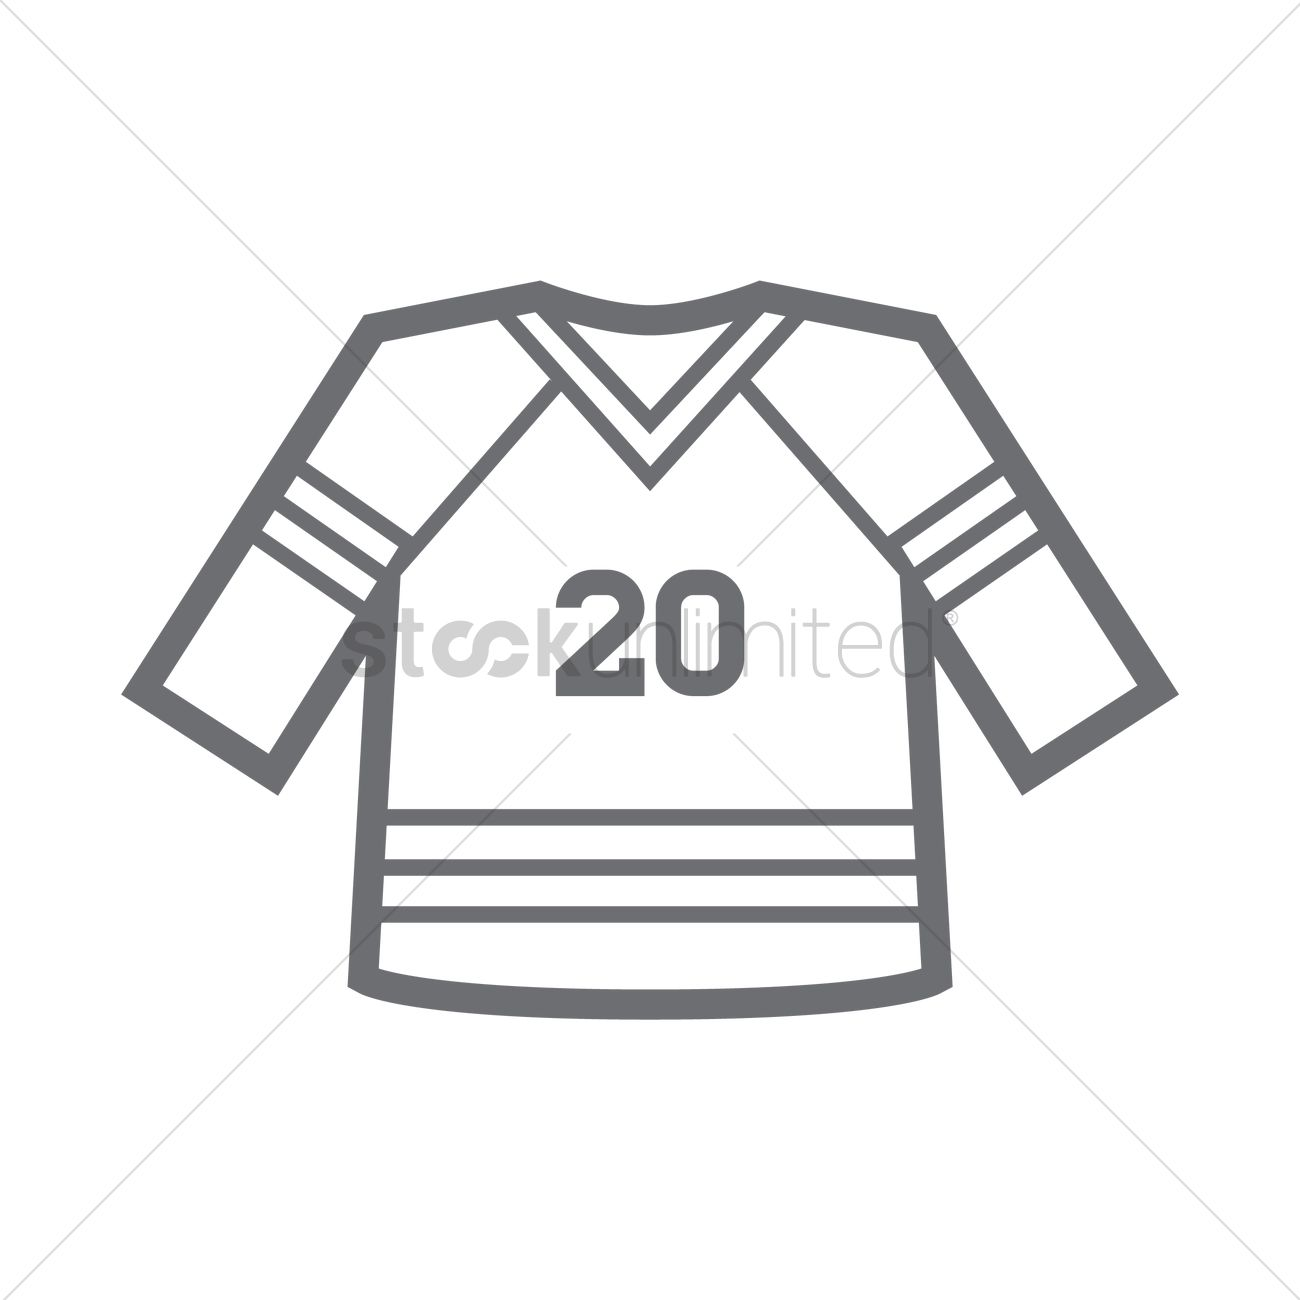 Ice Hockey Jersey Vector Image